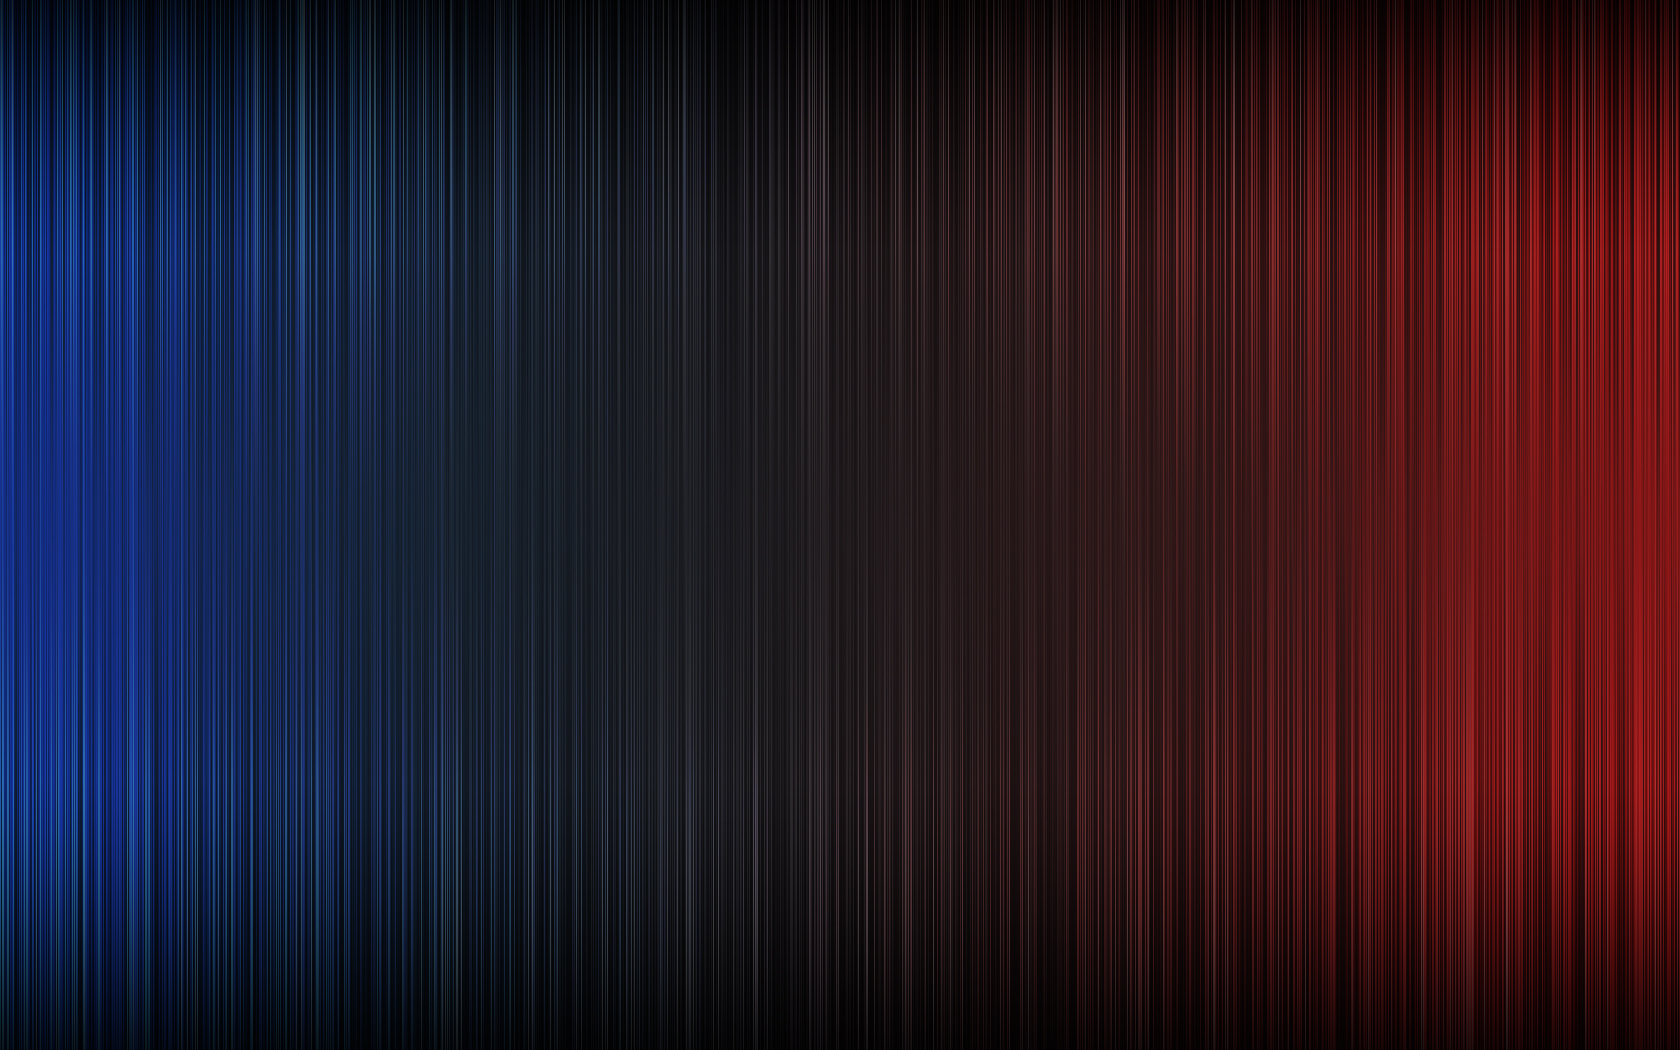 Motion Blur Wallpaper Free Design Abstract